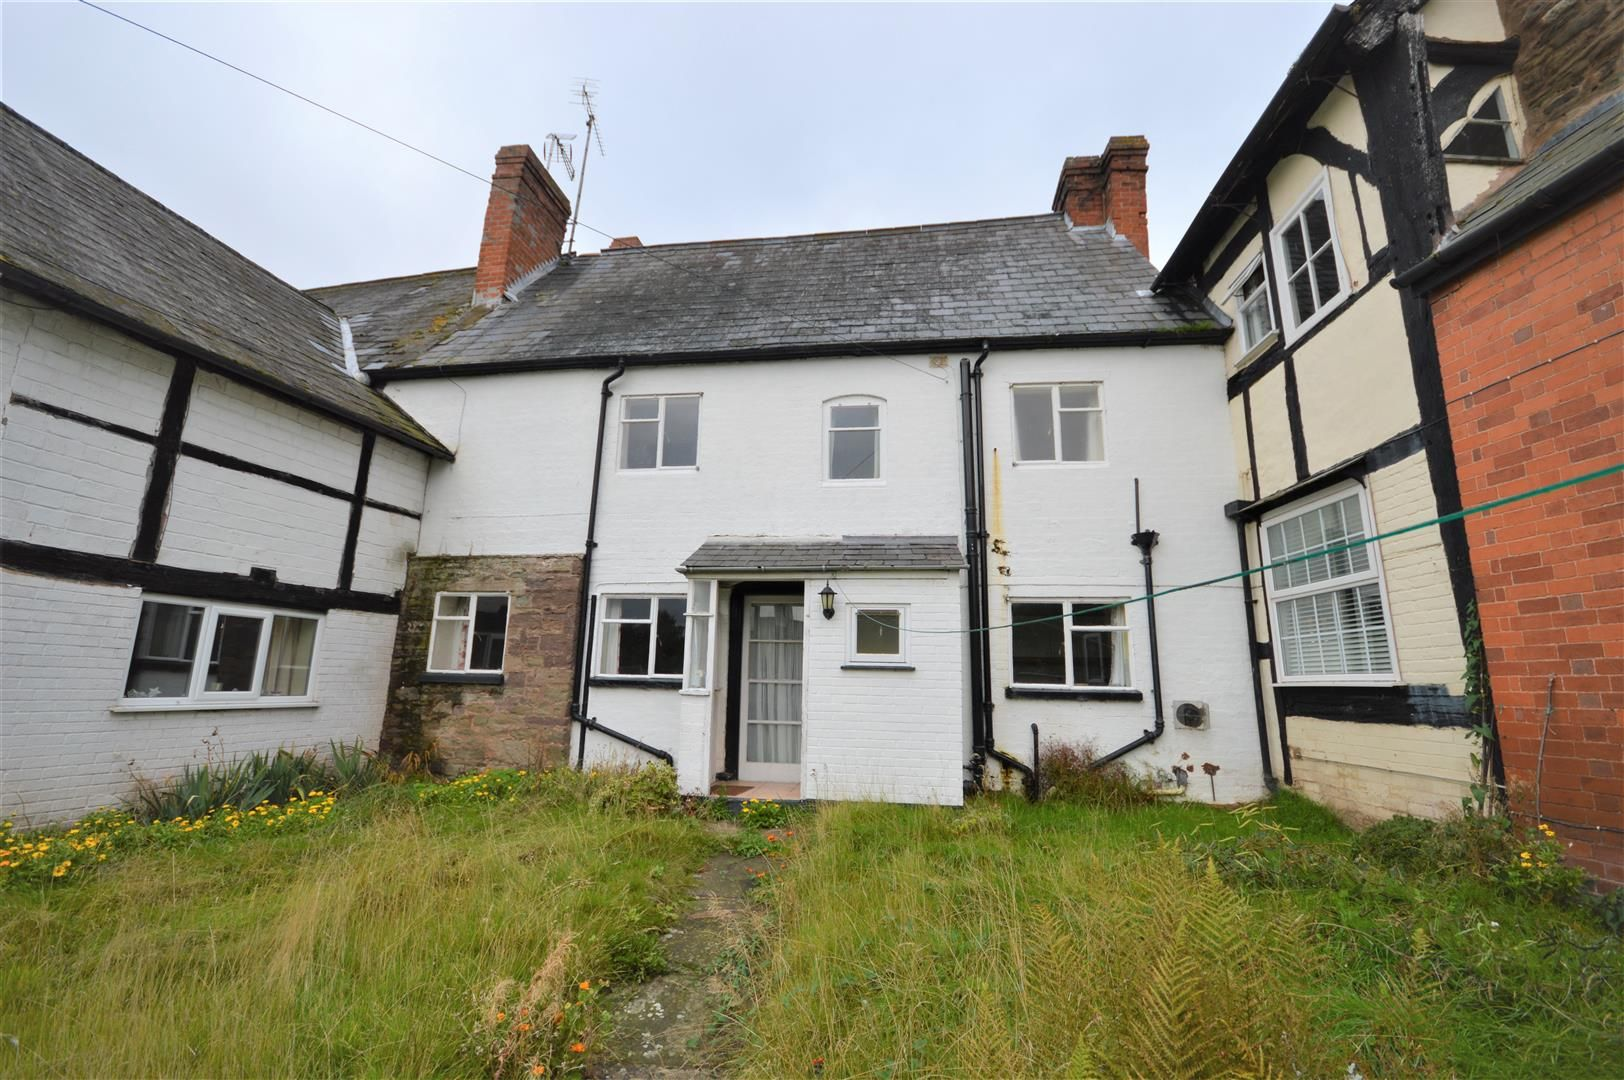 3 bed cottage for sale in Weobley 17